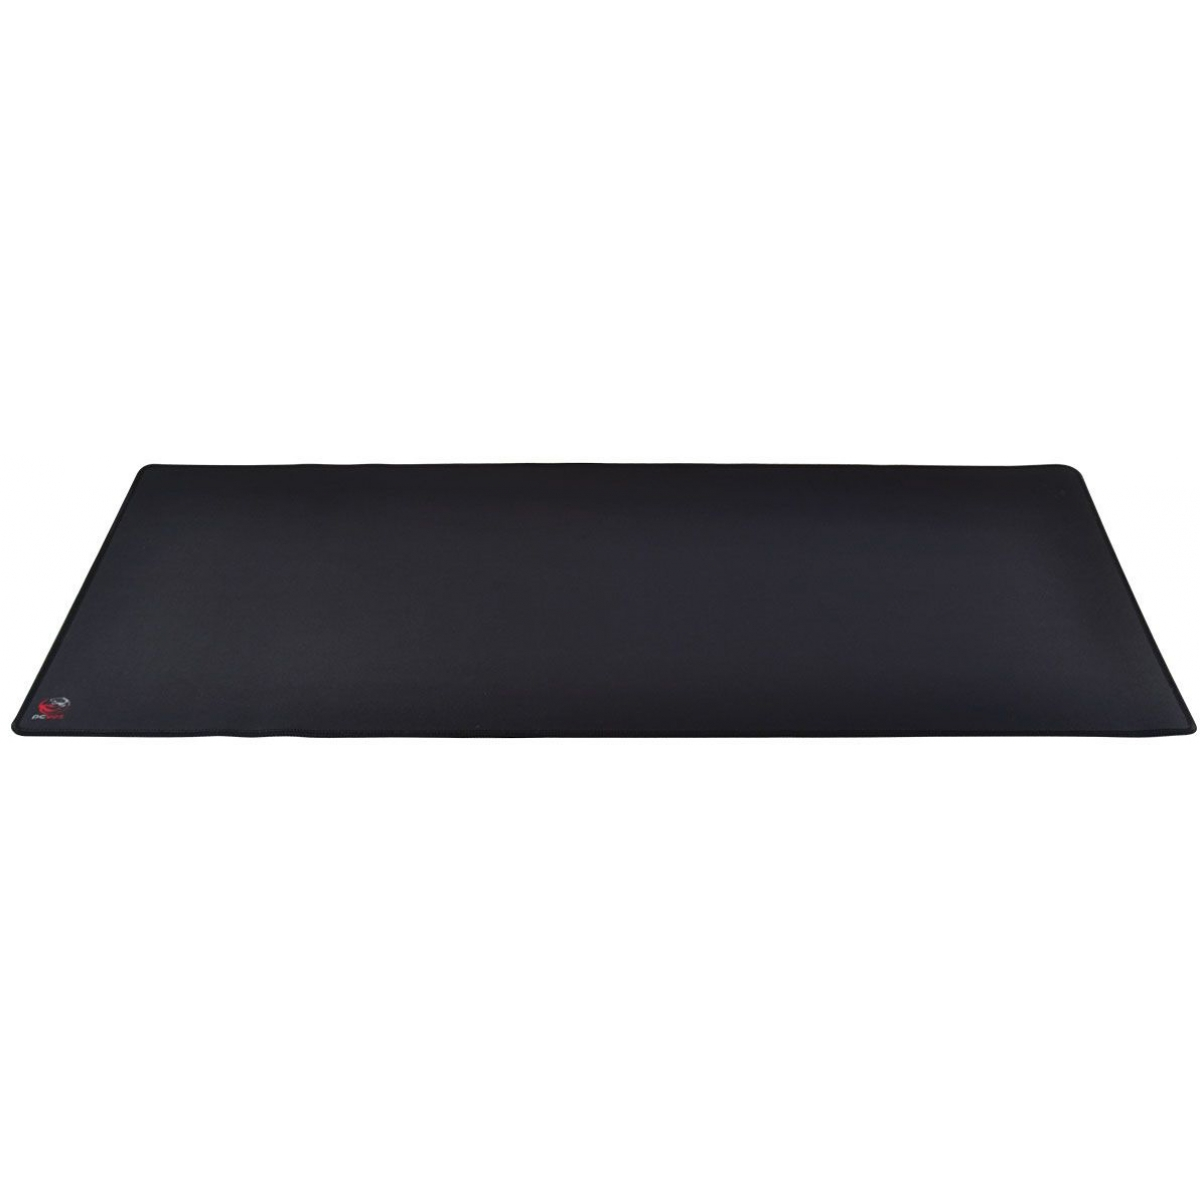 Mouse Pad Gamer PCyes Essential Extended Borda Costurada EE90X42